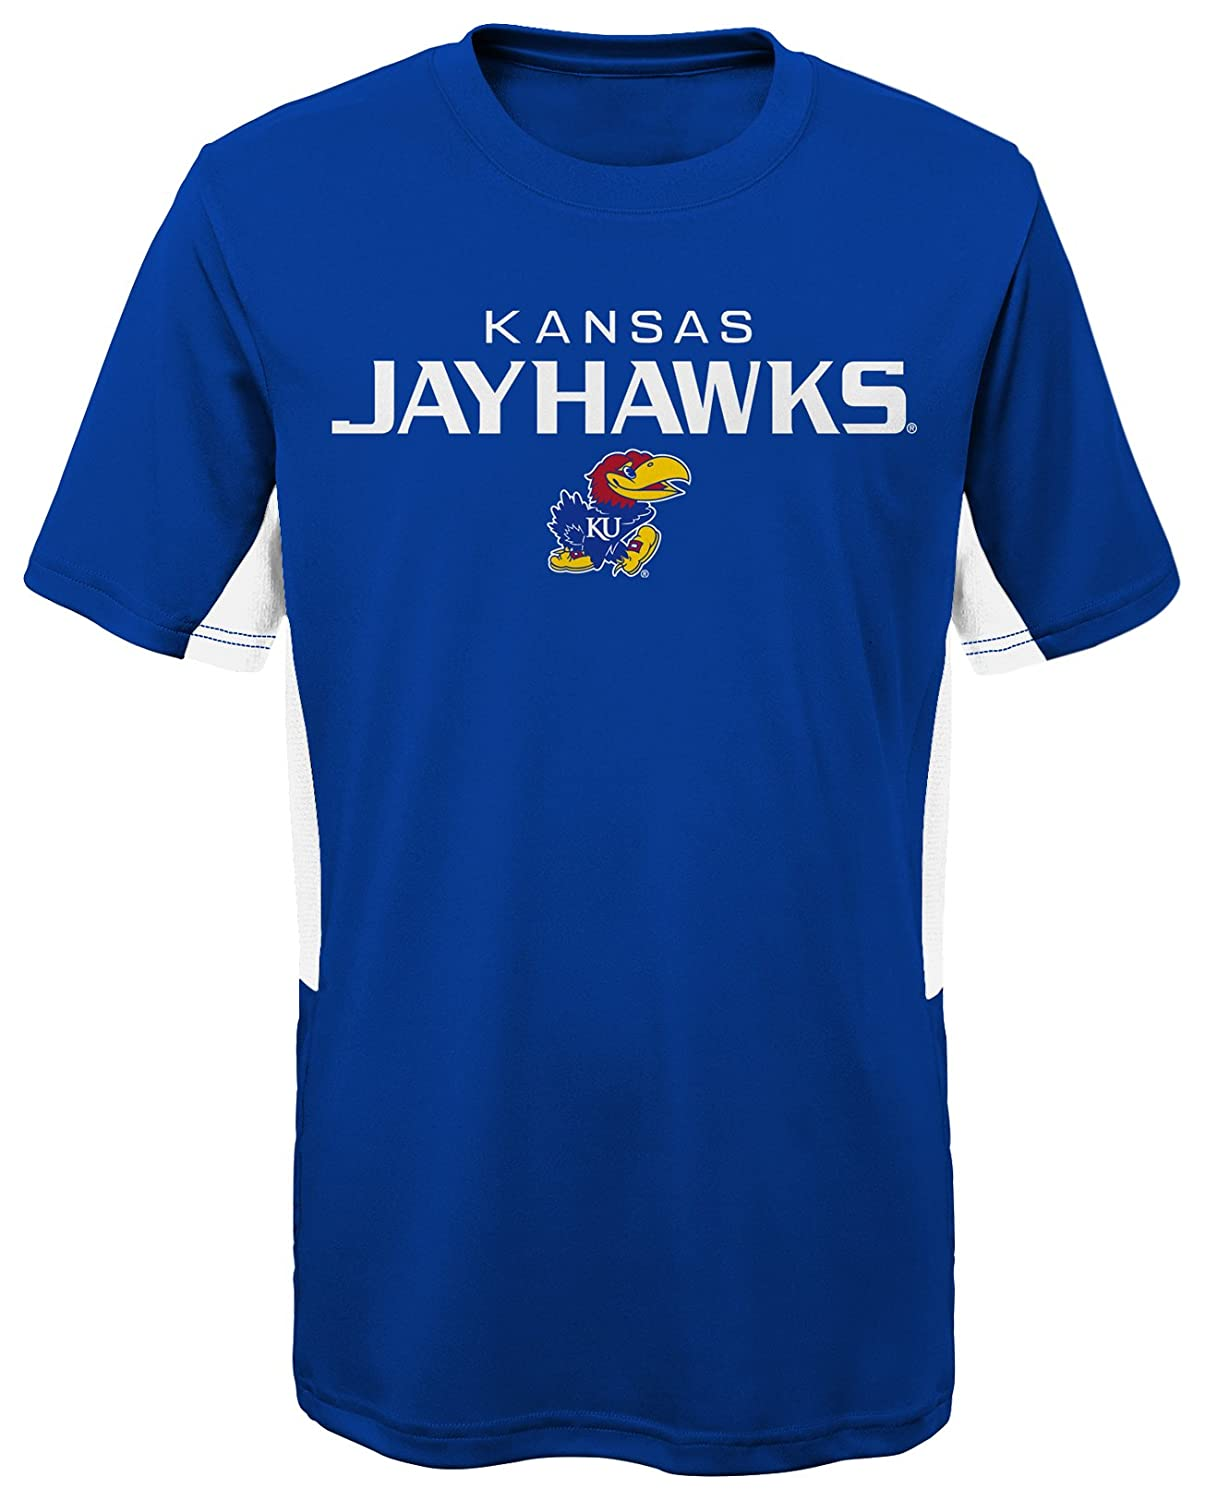 Royal NCAA by Outerstuff NCAA Kansas Jayhawks Youth Boys Mainframe: Short Sleeve Performance Top 18 Youth X-Large